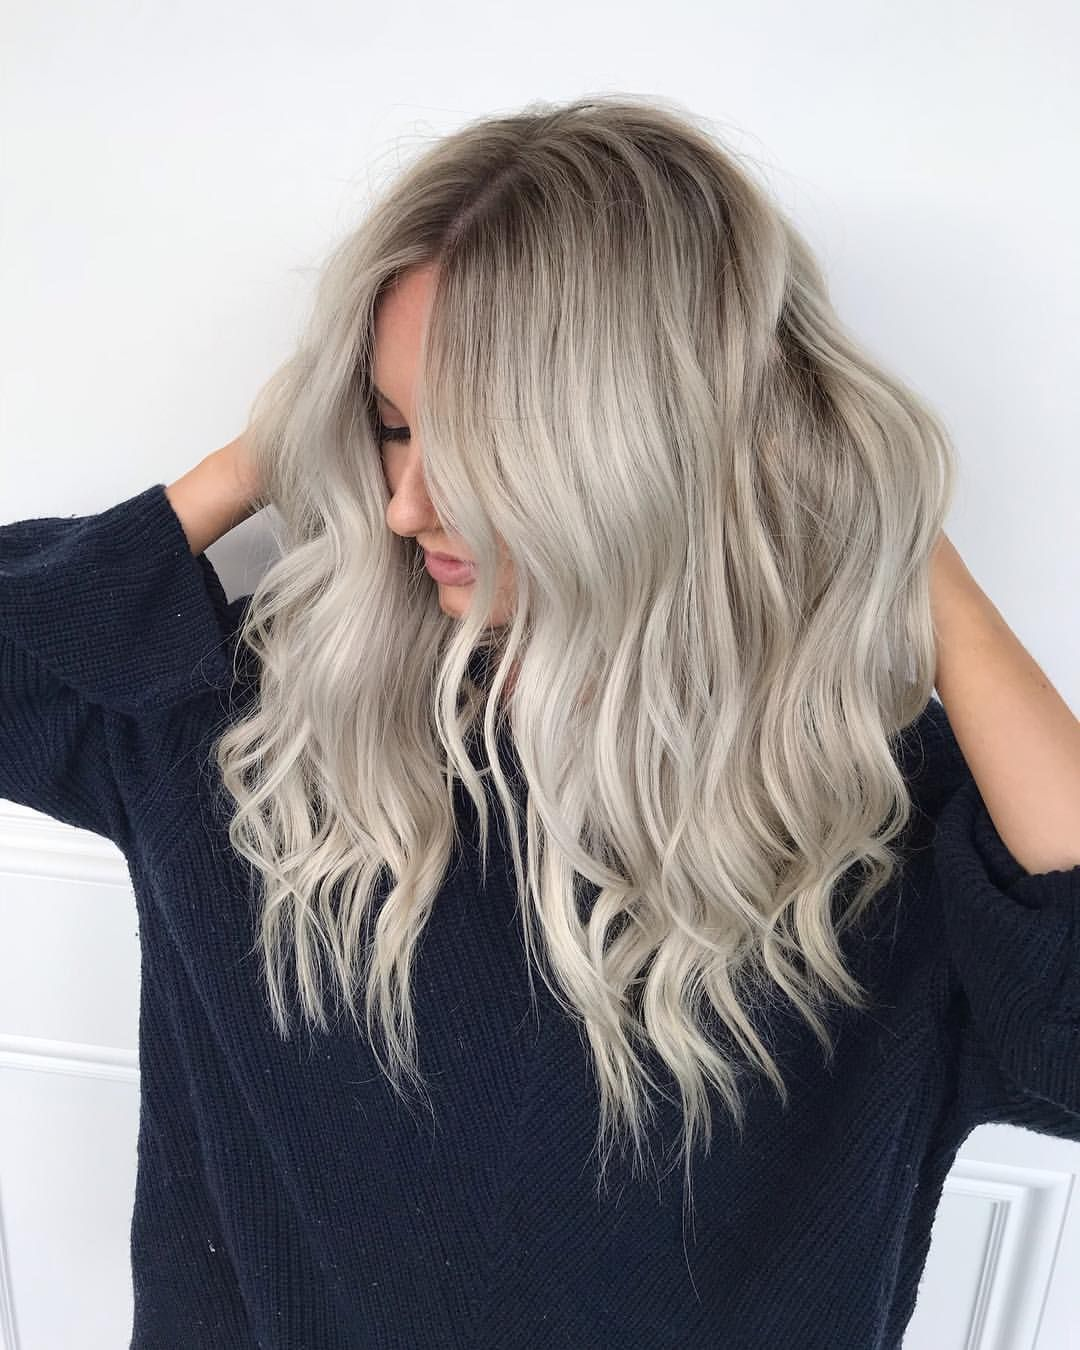 Platinum Blonde Wig / Ombre Ash Blonde Wig / Lace Front Wig / Balayage Human Hair Wig